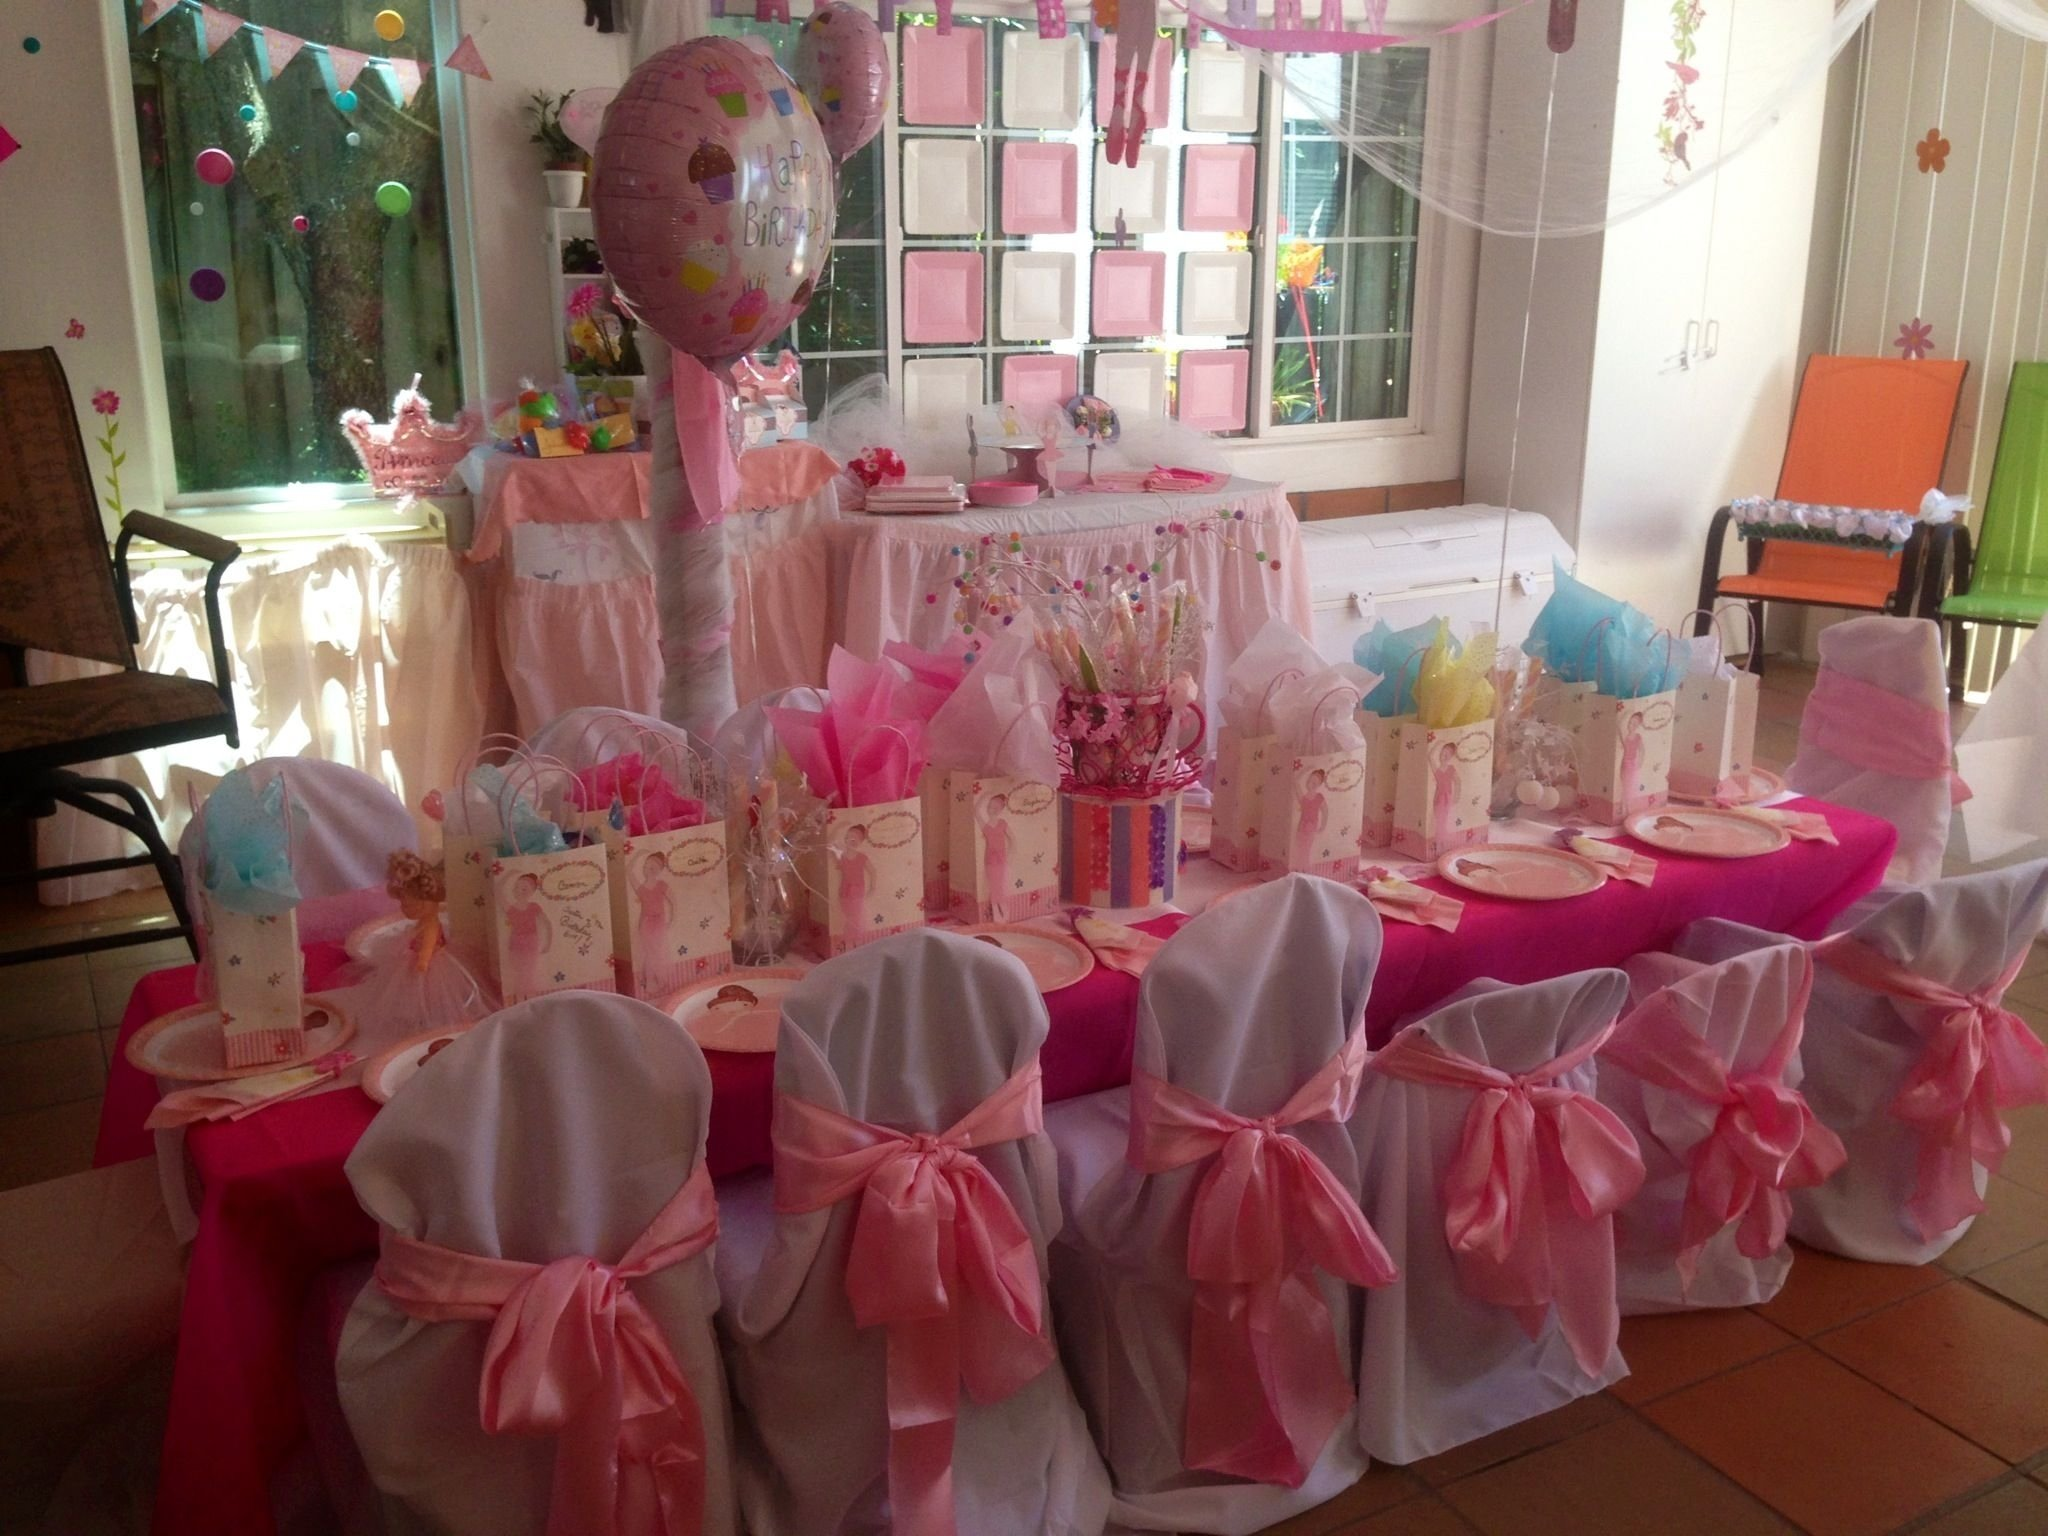 10 Stylish Princess Tea Party Birthday Ideas princess ballerina party for toddlers my parties all crafted my me 2020